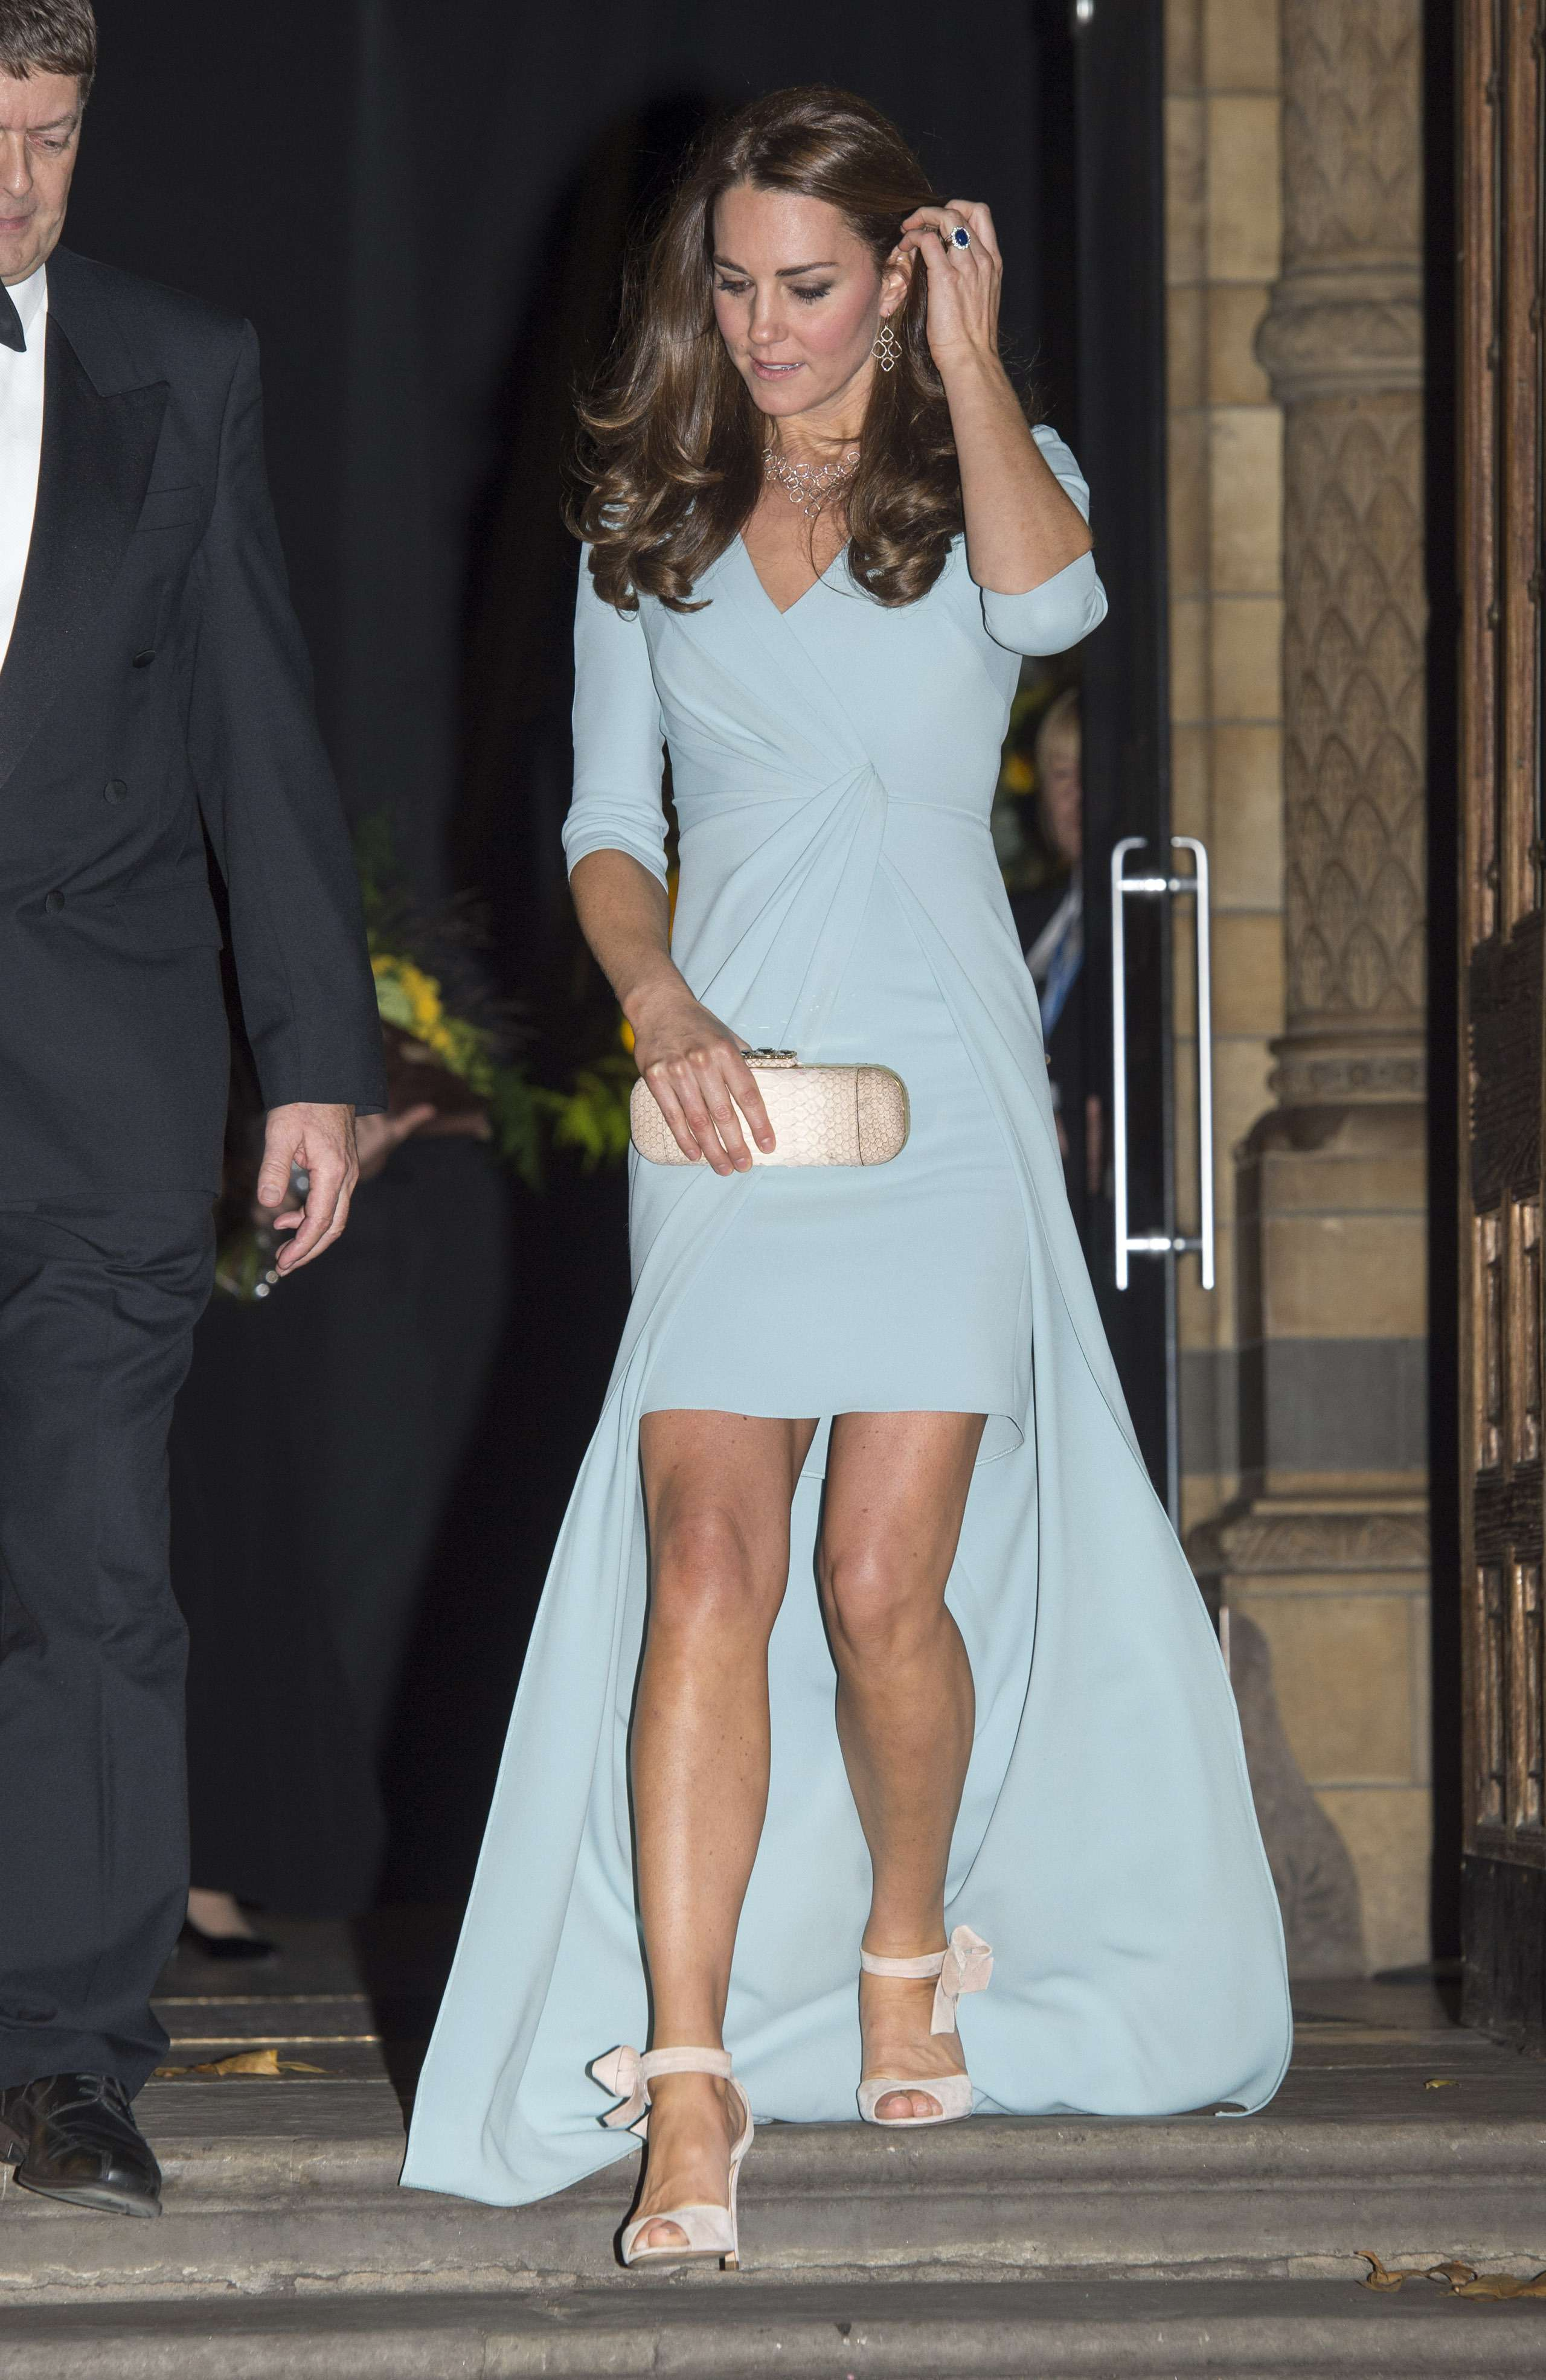 Kate Middleton acudió este martes al Museo de Historia Natural con un Jenny Packham azul hielo presumiendo de piernas y disimulando su todavía casi inapreciable tripa de embarazada. Foto: Gtres